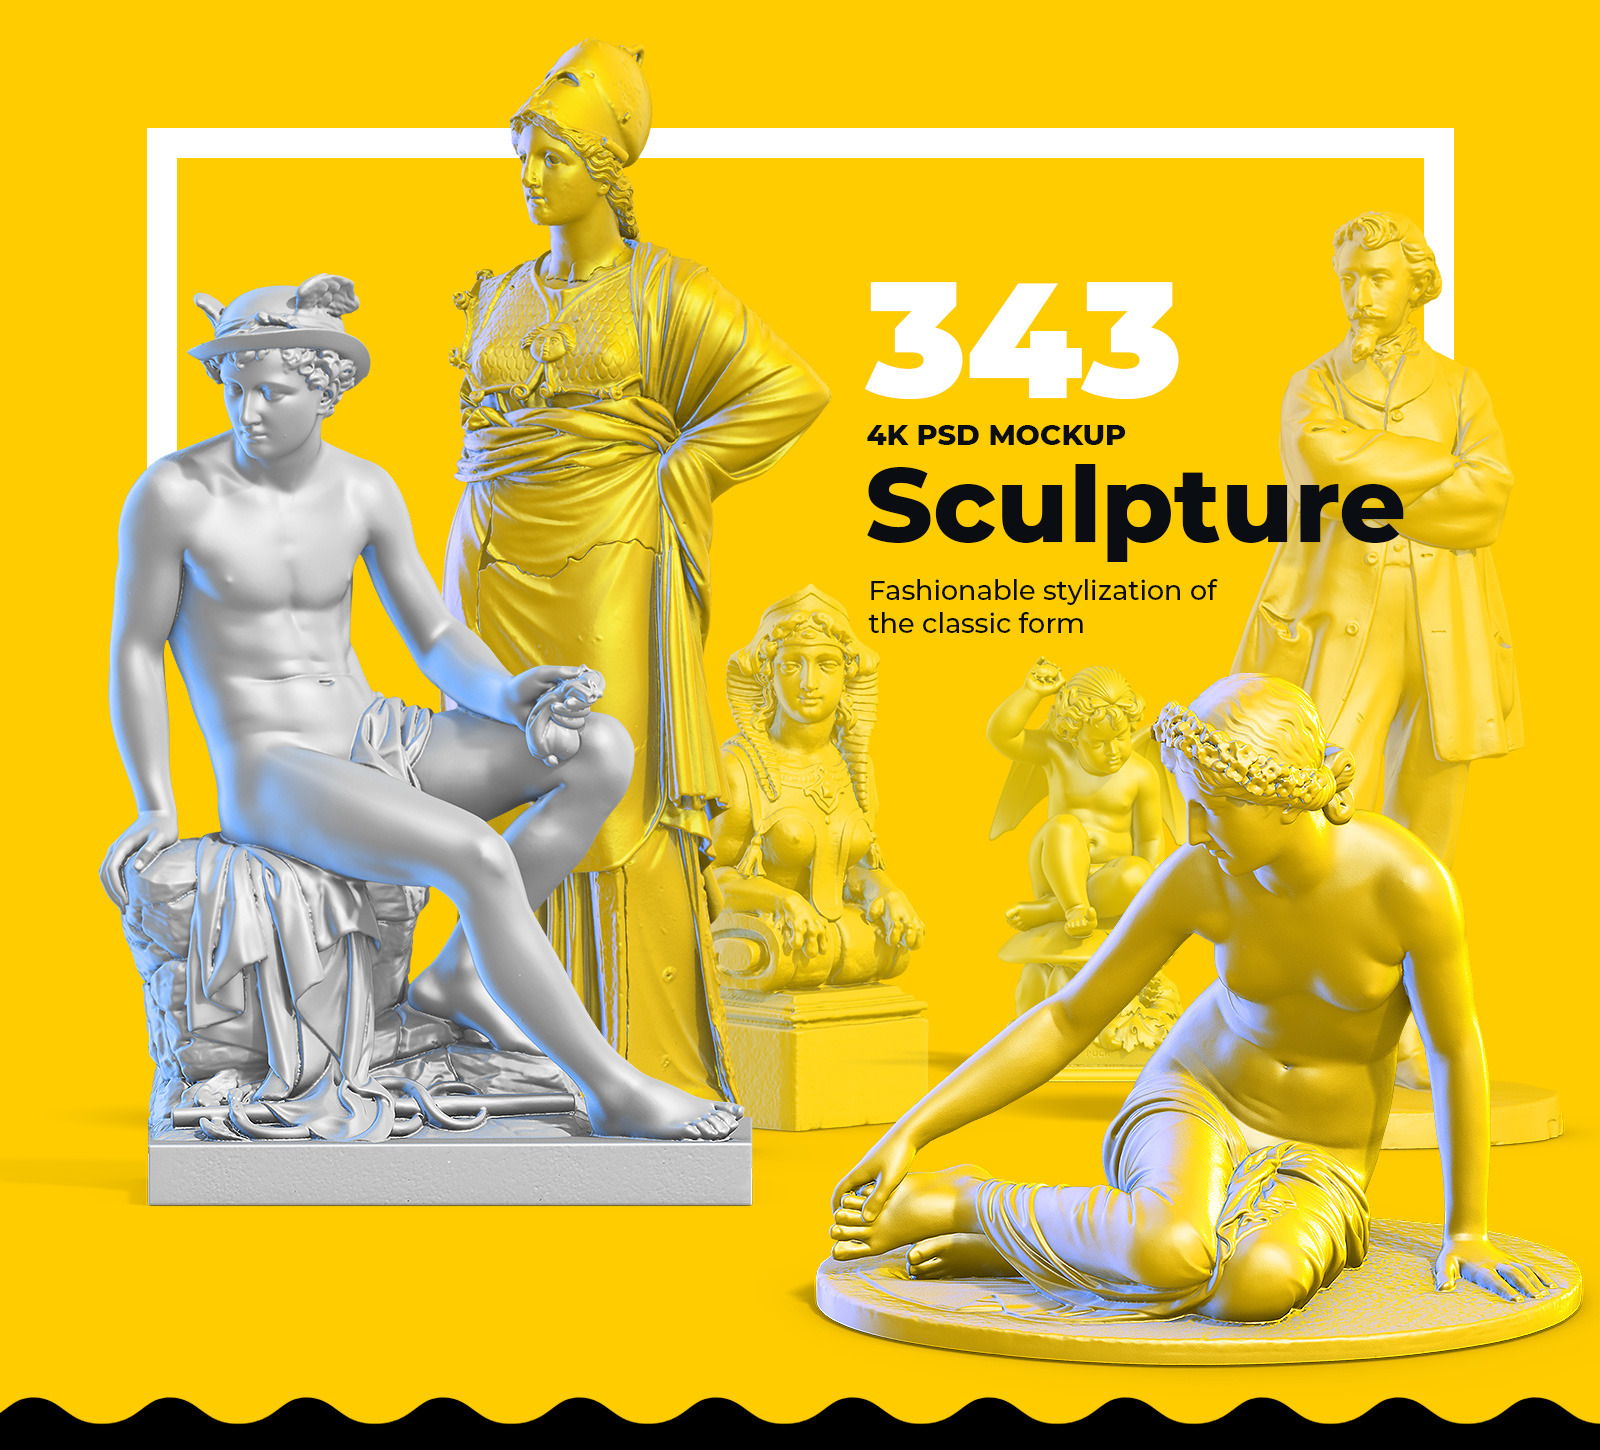 Collection of 343 Sculptures #1 for branding and design of your product